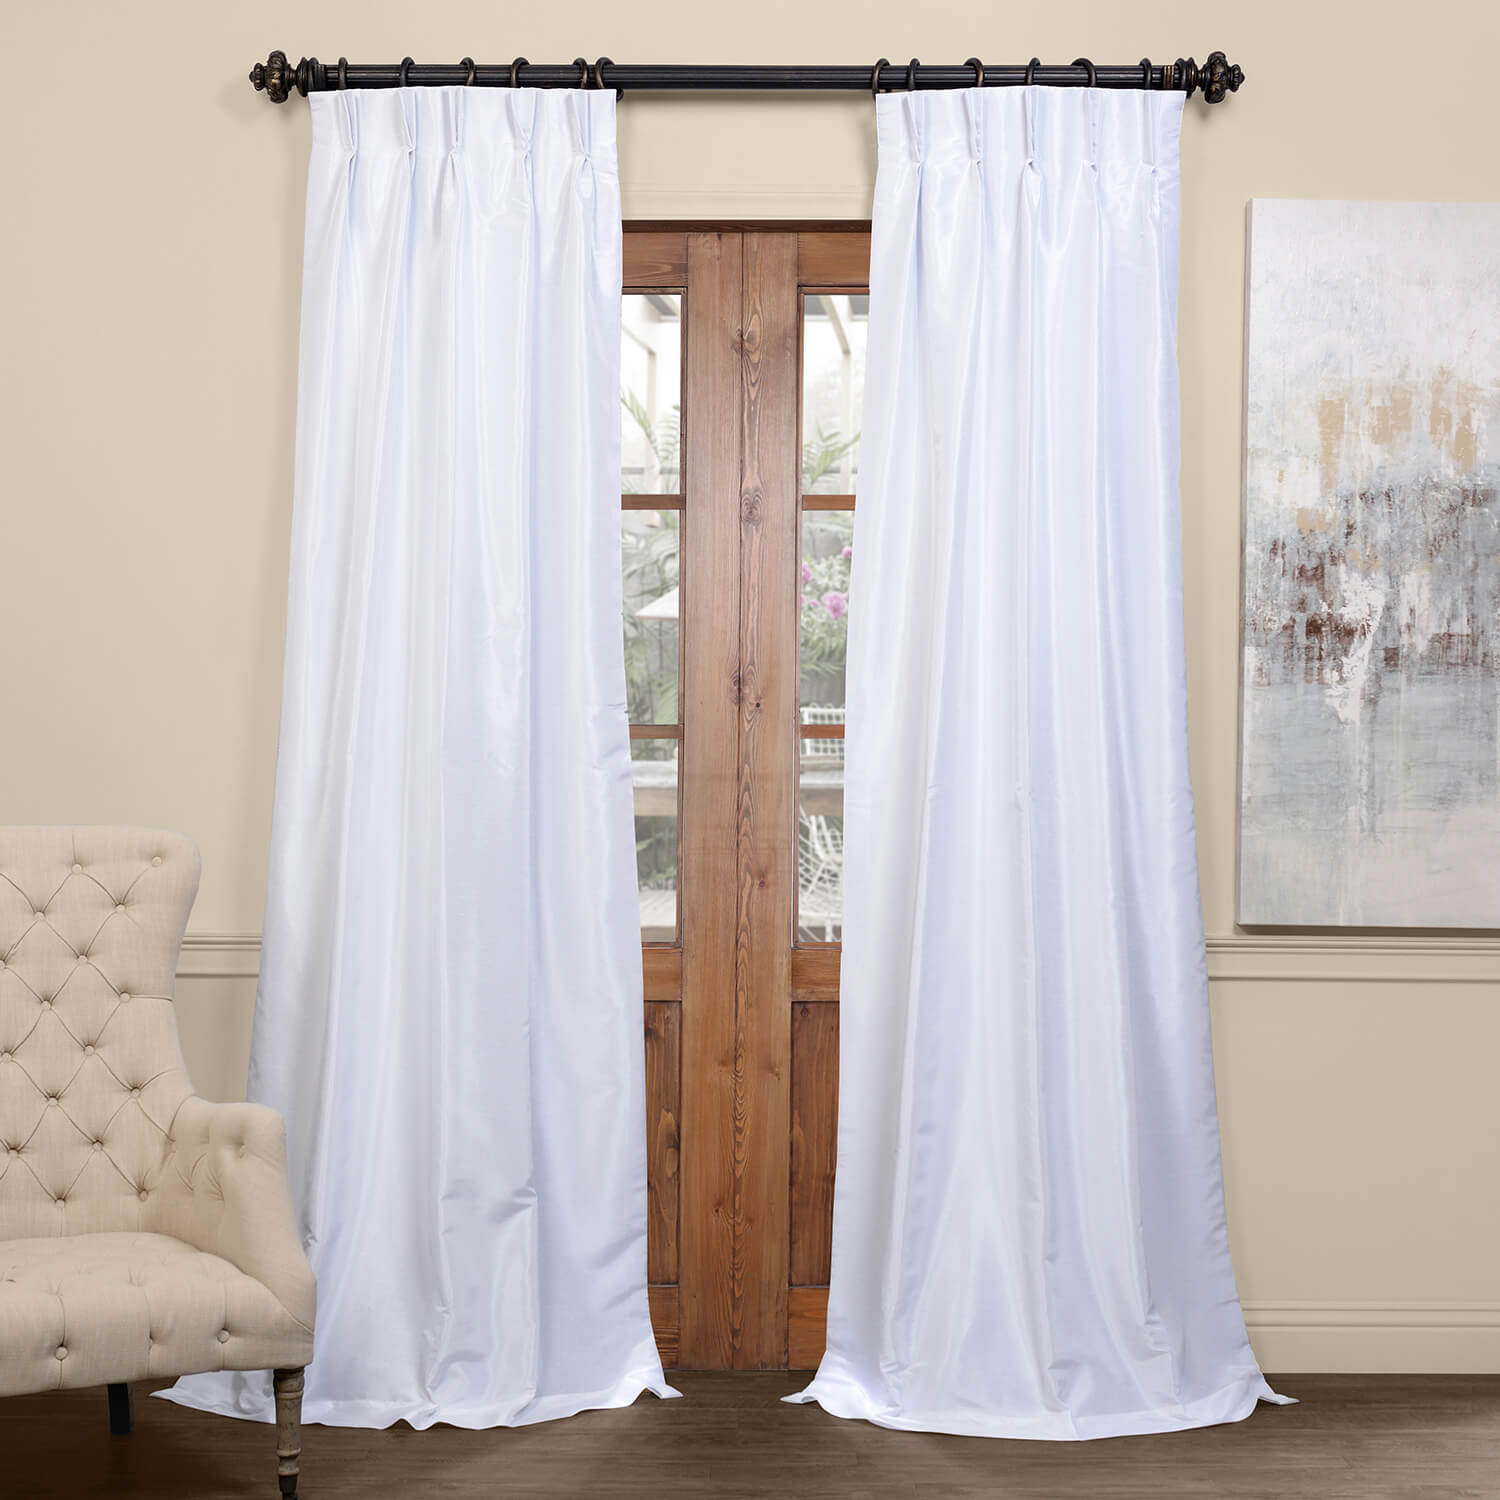 Ice Blackout Vintage Textured Faux Dupioni Pleated Curtain Pertaining To Ice White Vintage Faux Textured Silk Curtain Panels (View 15 of 20)